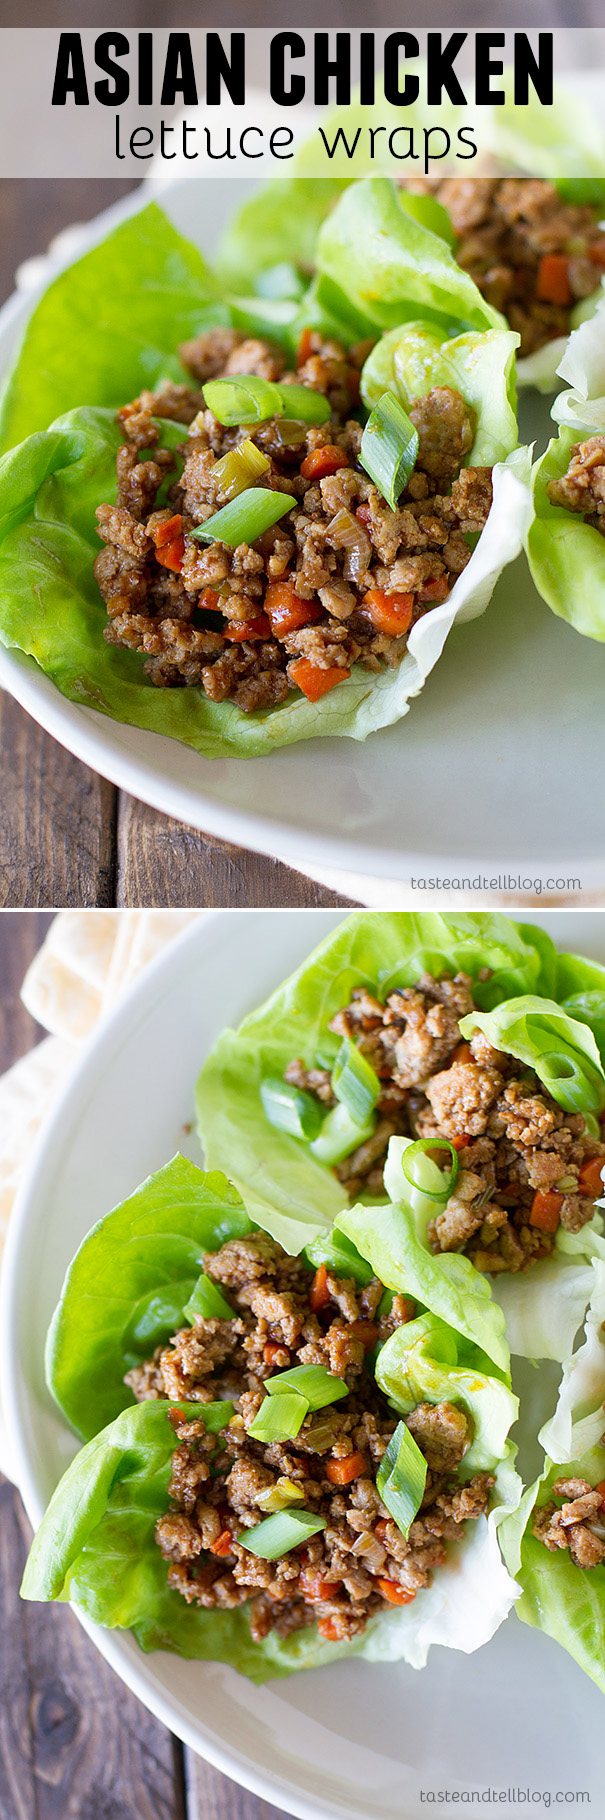 Dinner in under 30 minutes! These Asian Chicken Lettuce Wraps are your solution for an easy chicken dinner.